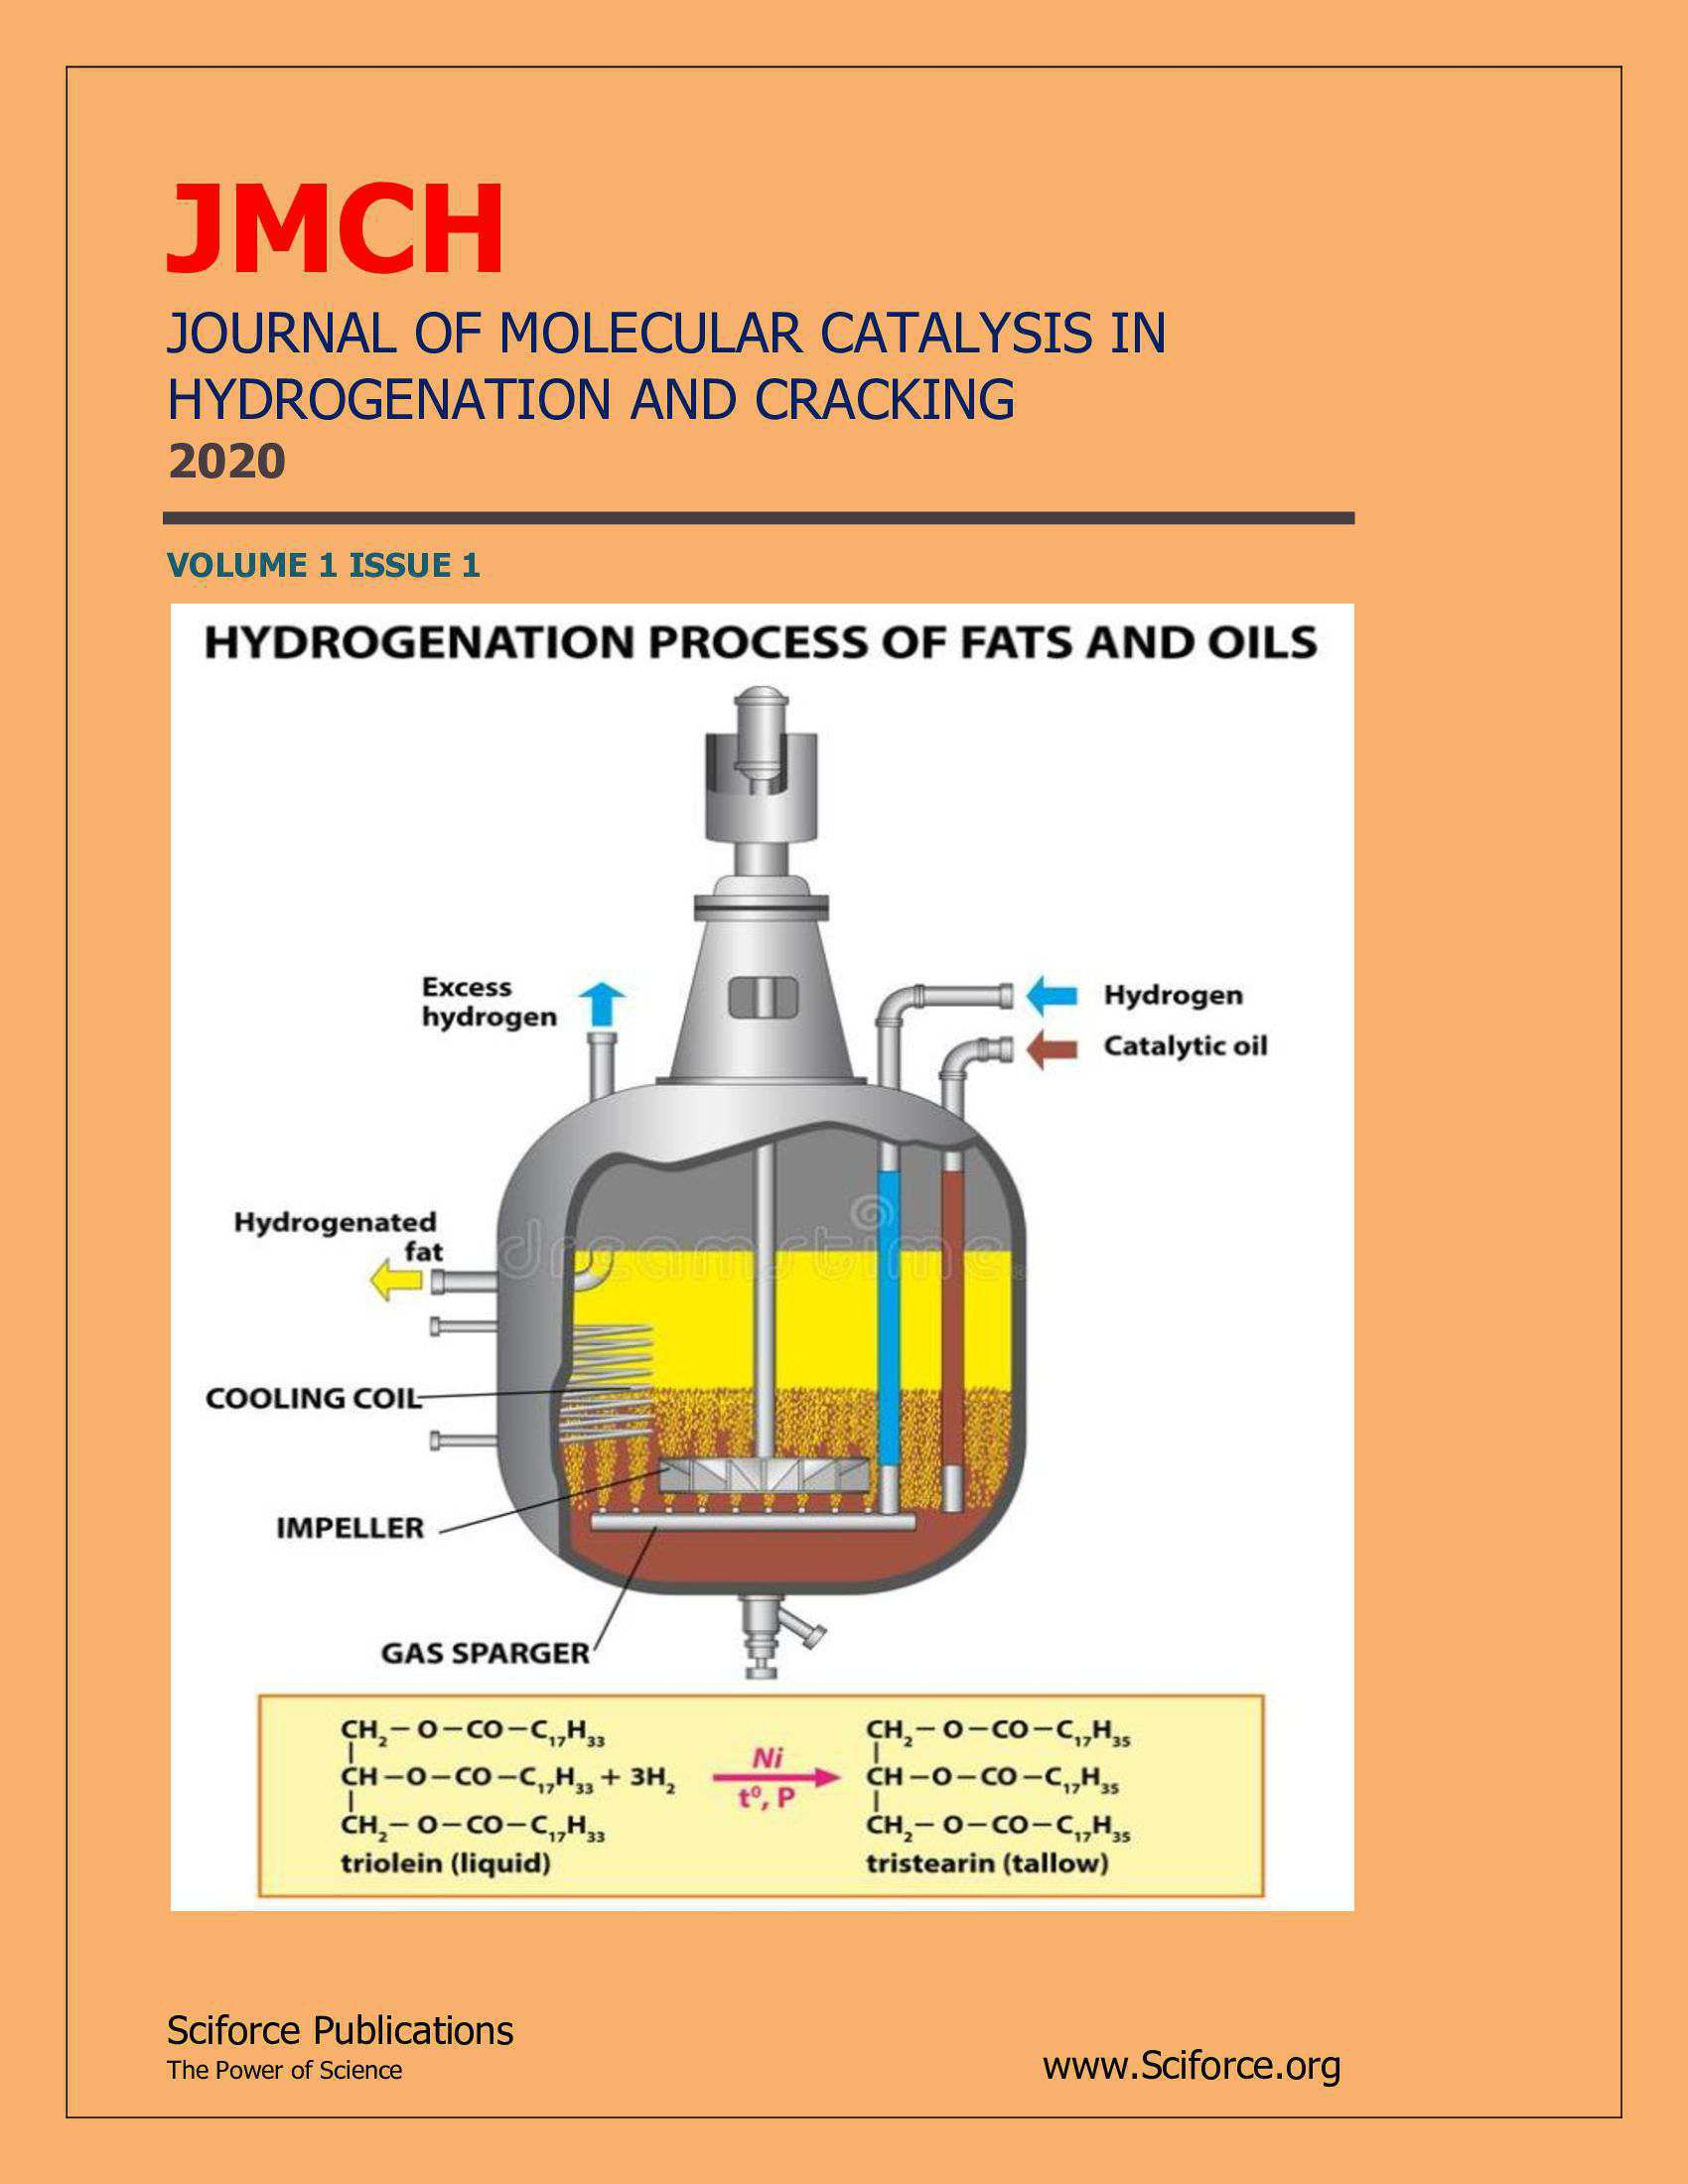 Journal of Molecular Catalysis in Hydrogenation and Cracking